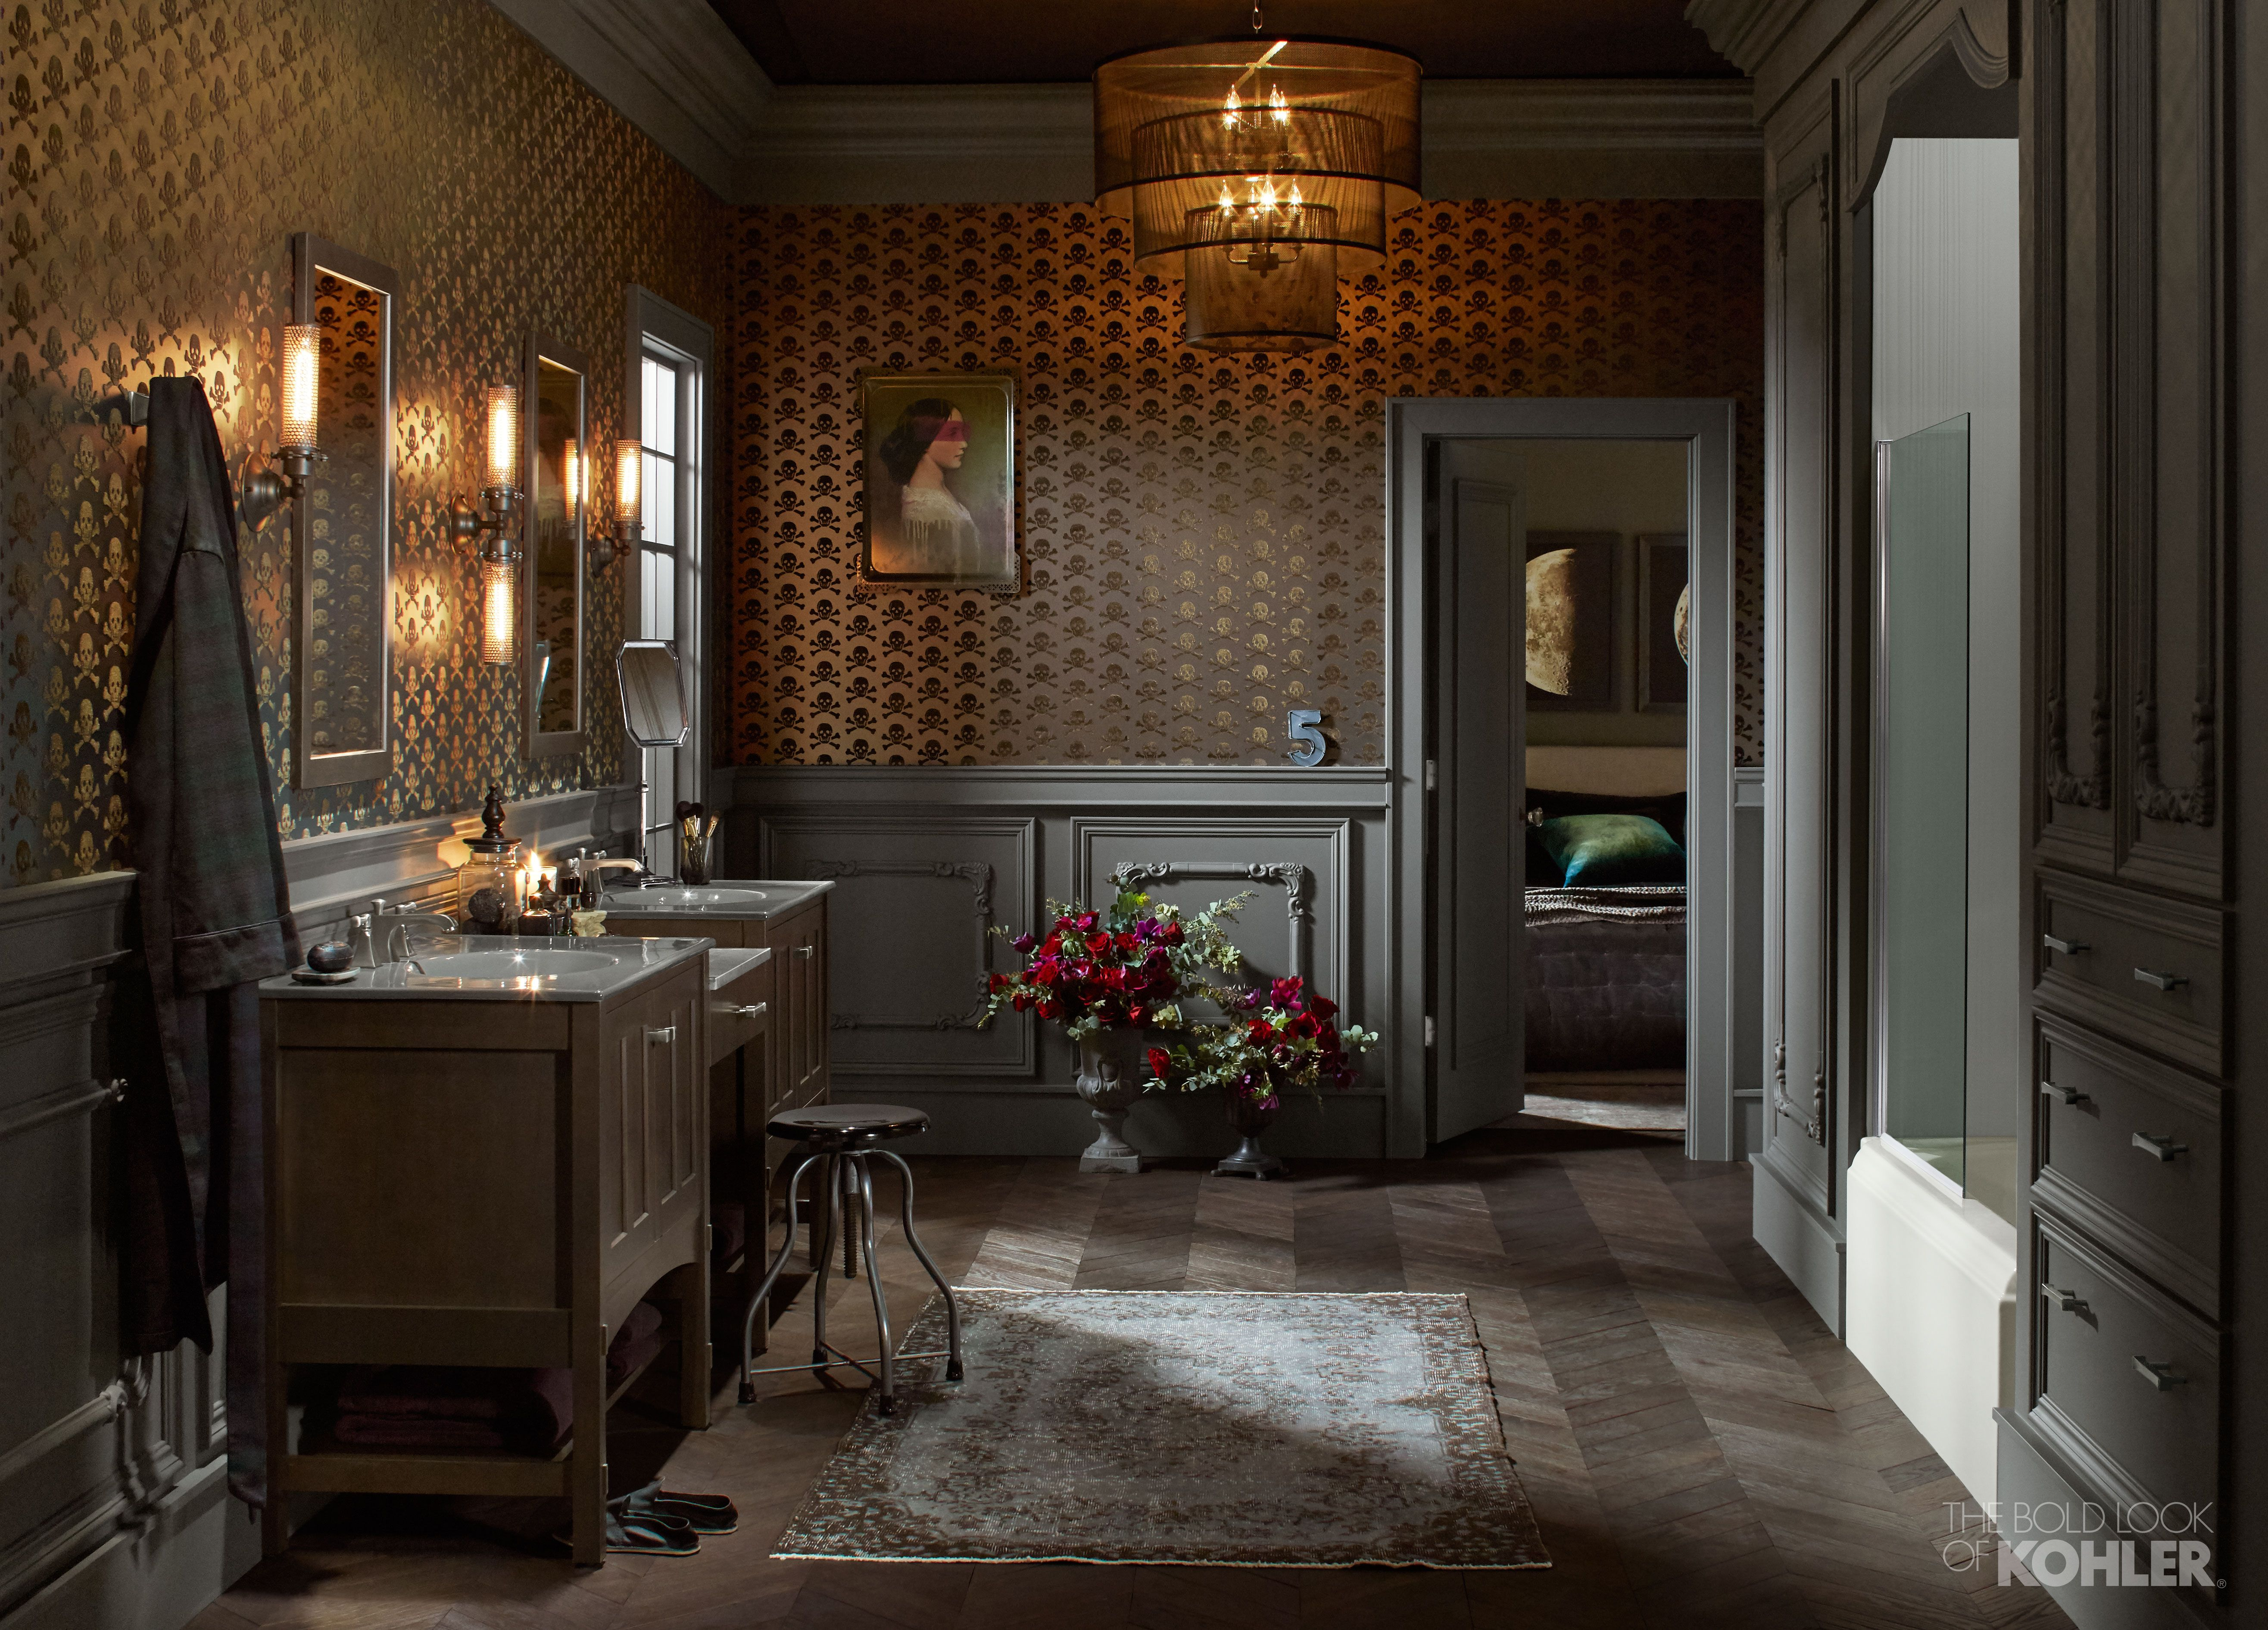 Perfect for a couple, this steampunk-style, edgy bathroom has both a shared vanity space and private showering and toilet spaces.